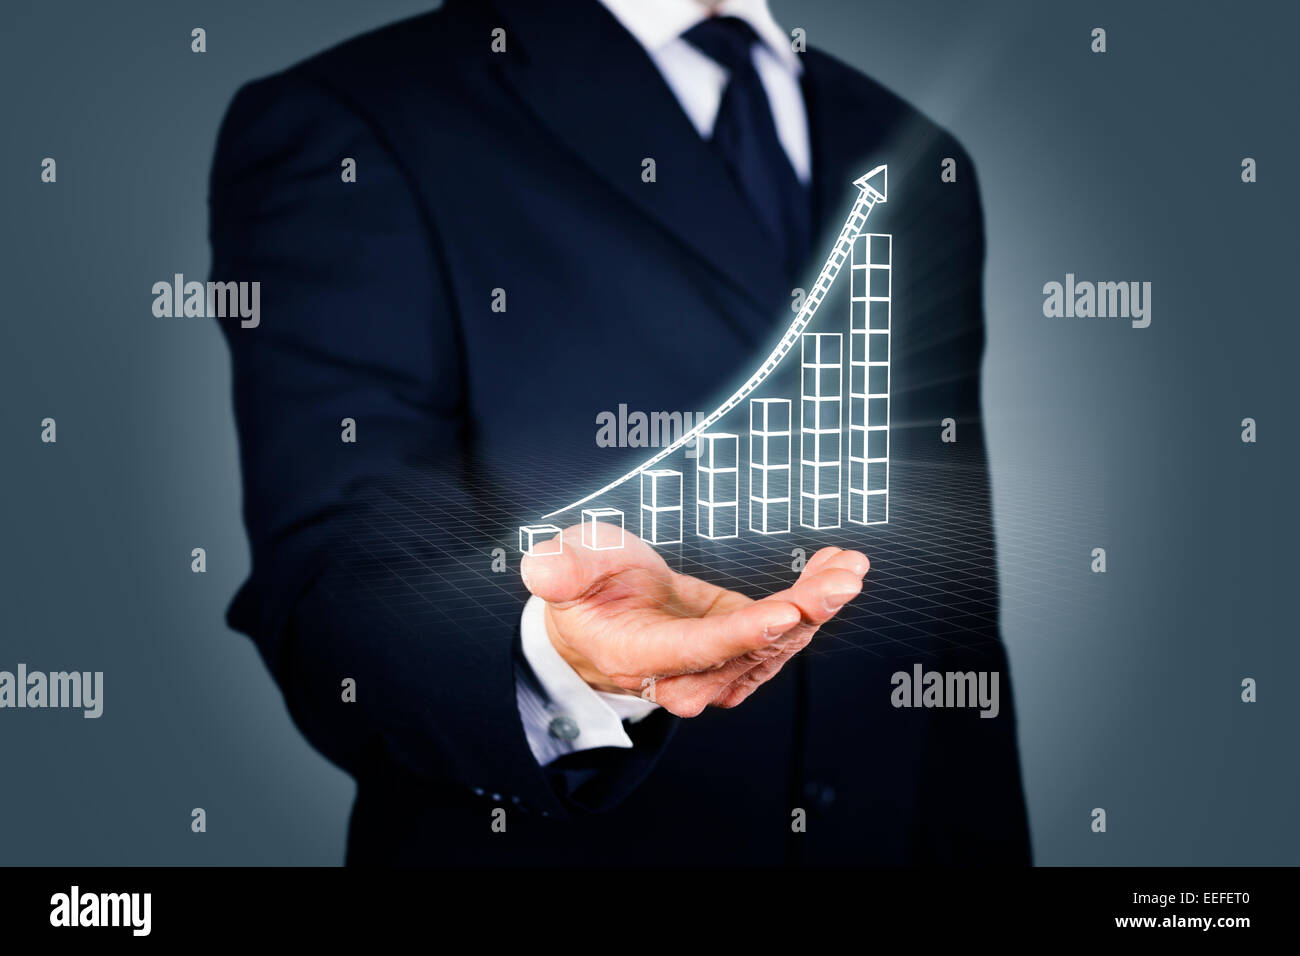 Businessman with a rising chart in wireframe mode - Stock Image